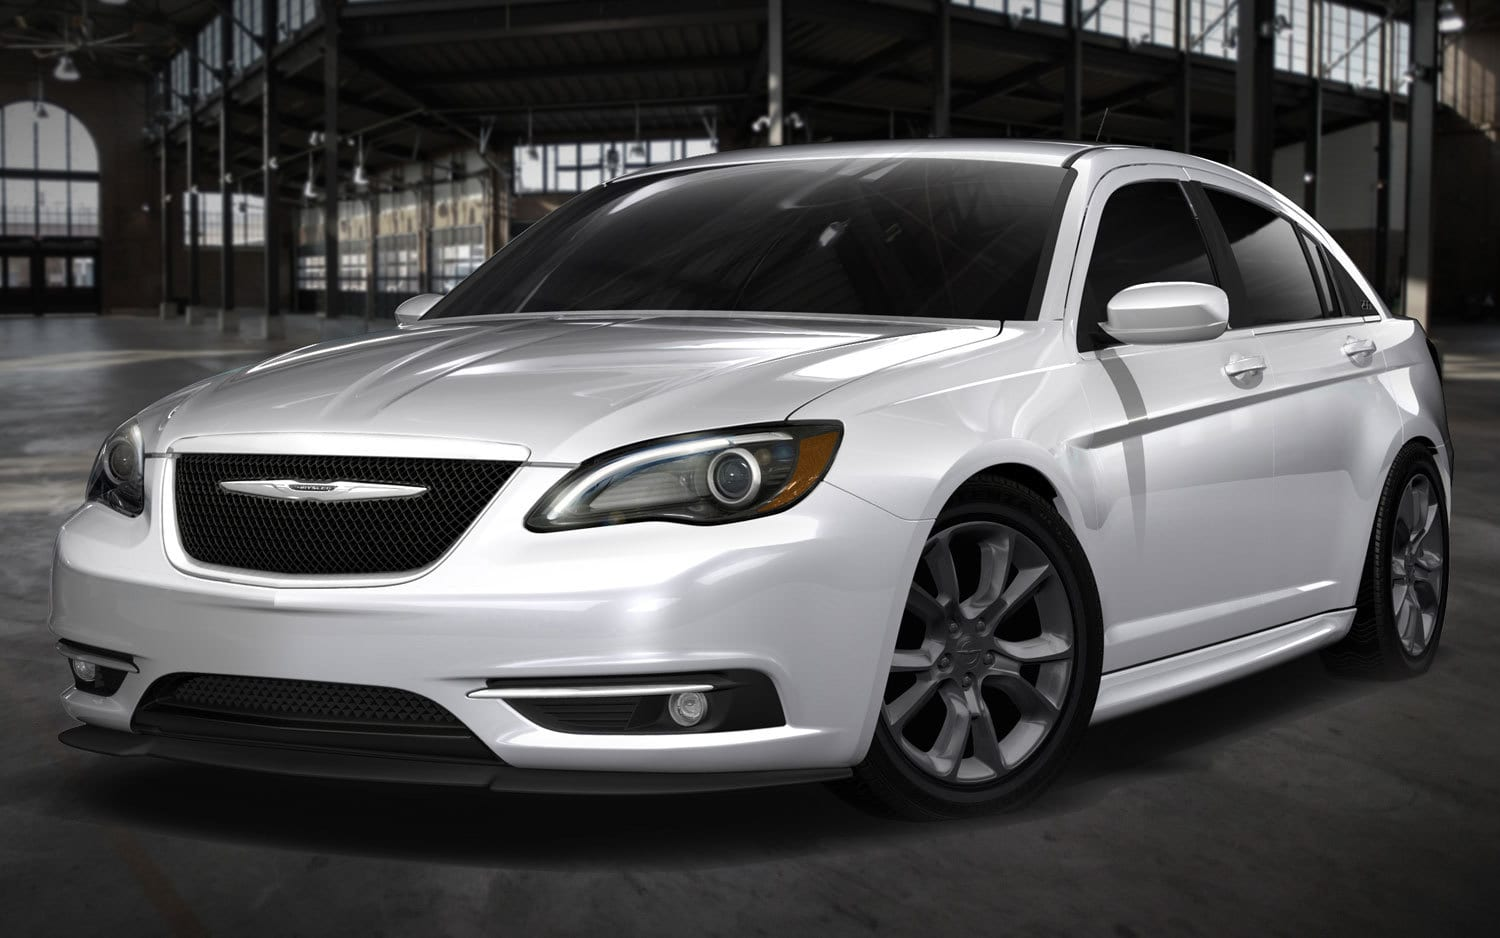 Used Chrysler 200 model